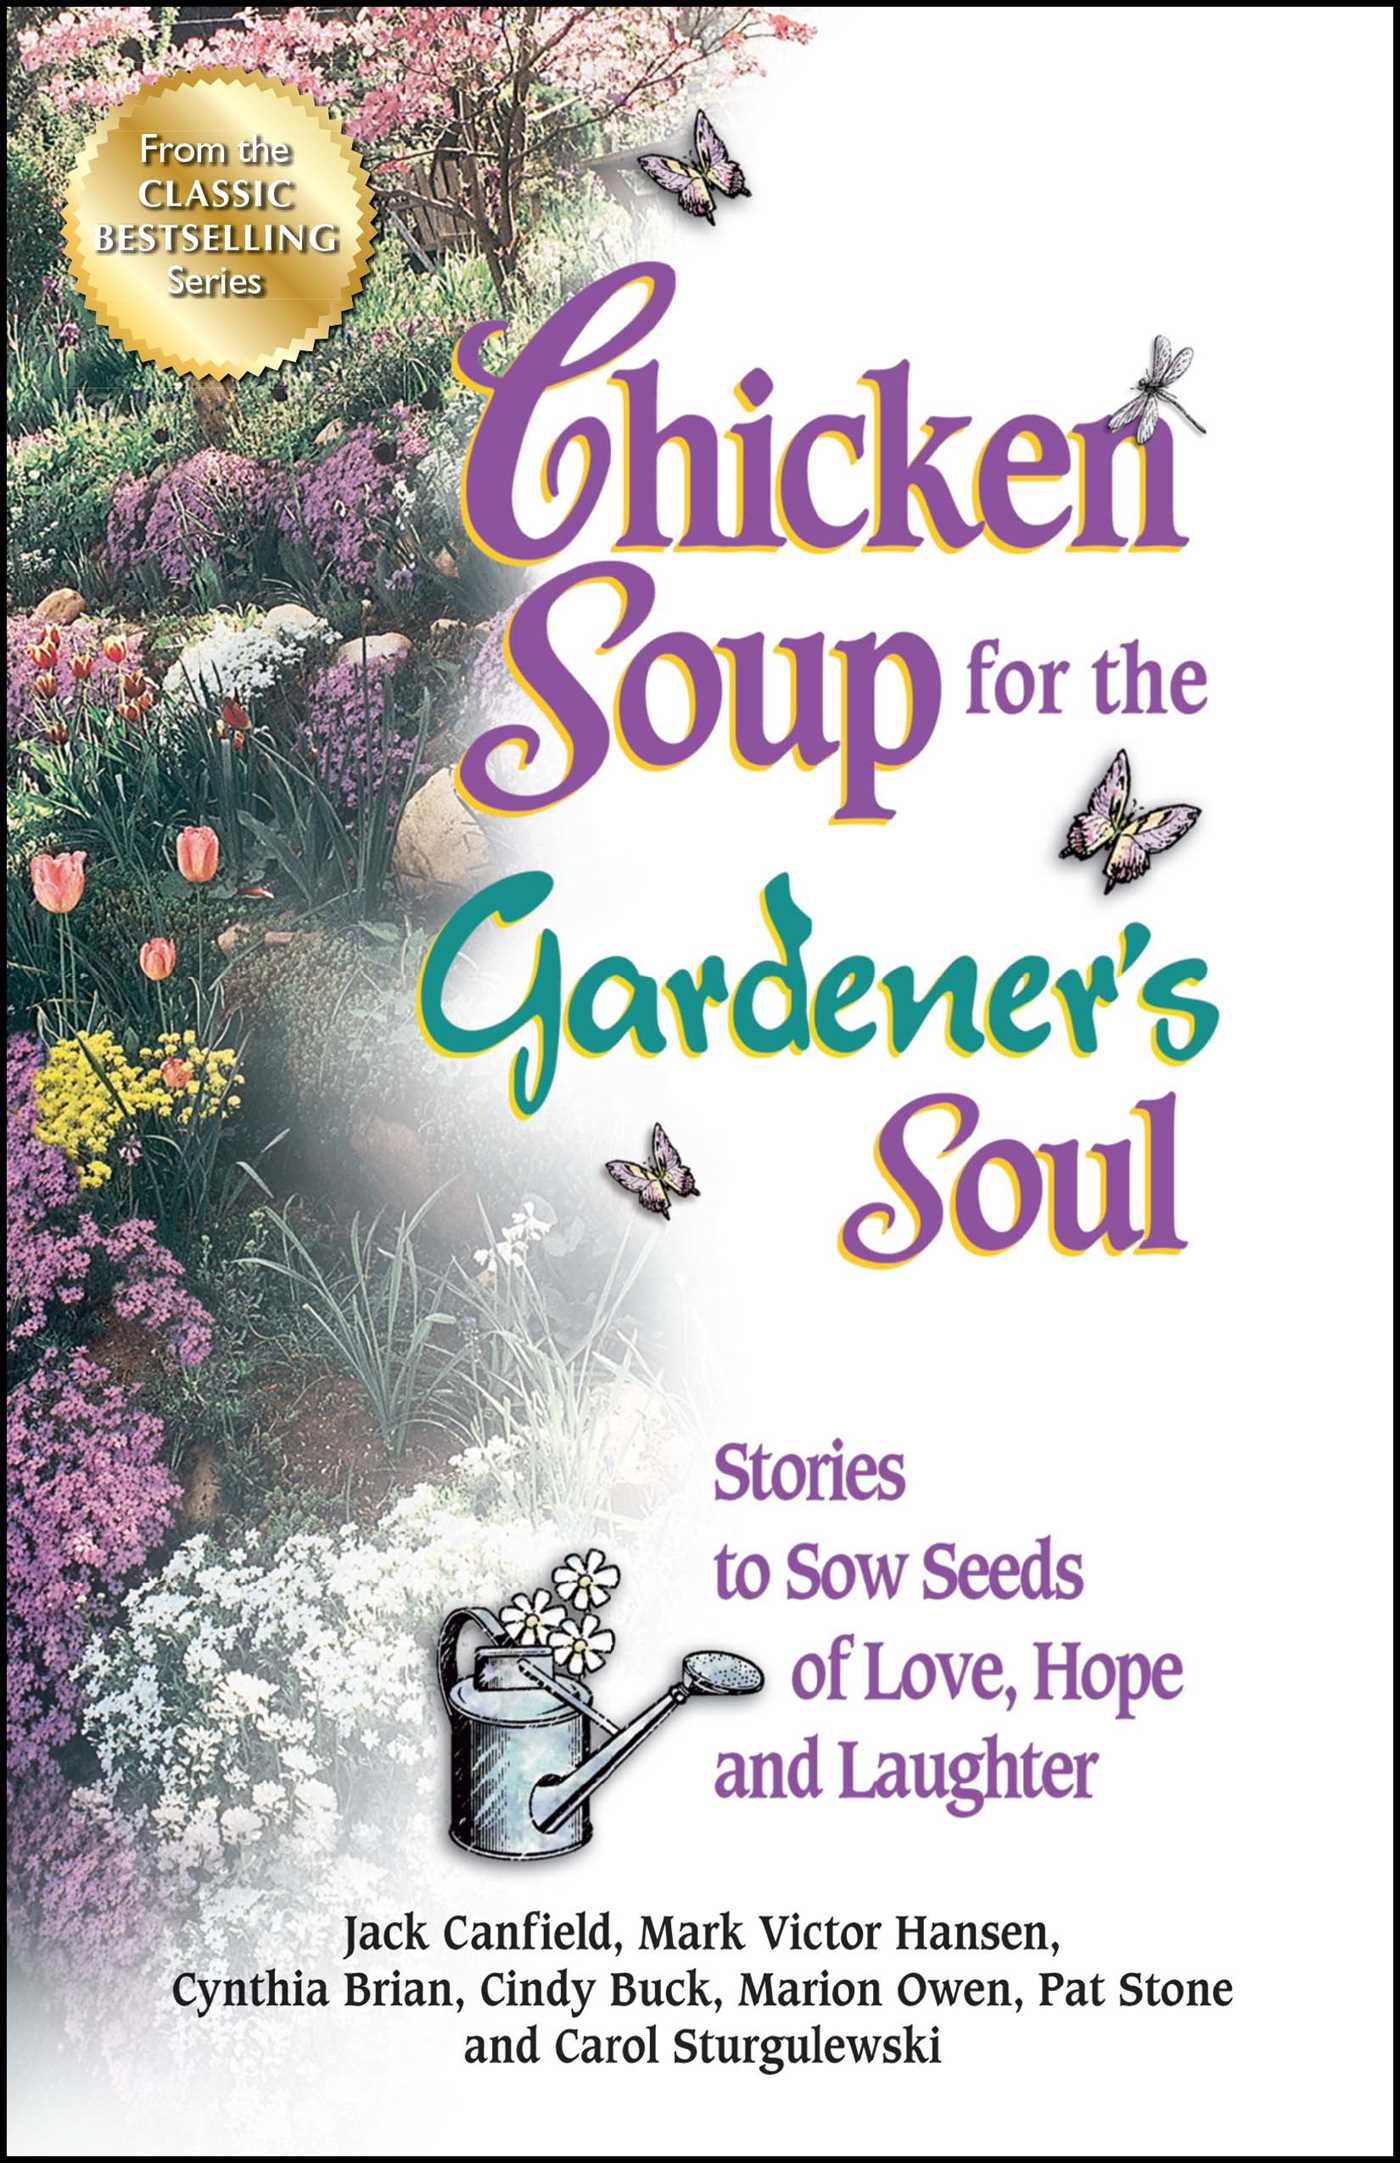 Chicken soup for the gardeners soul 9781623610975 hr